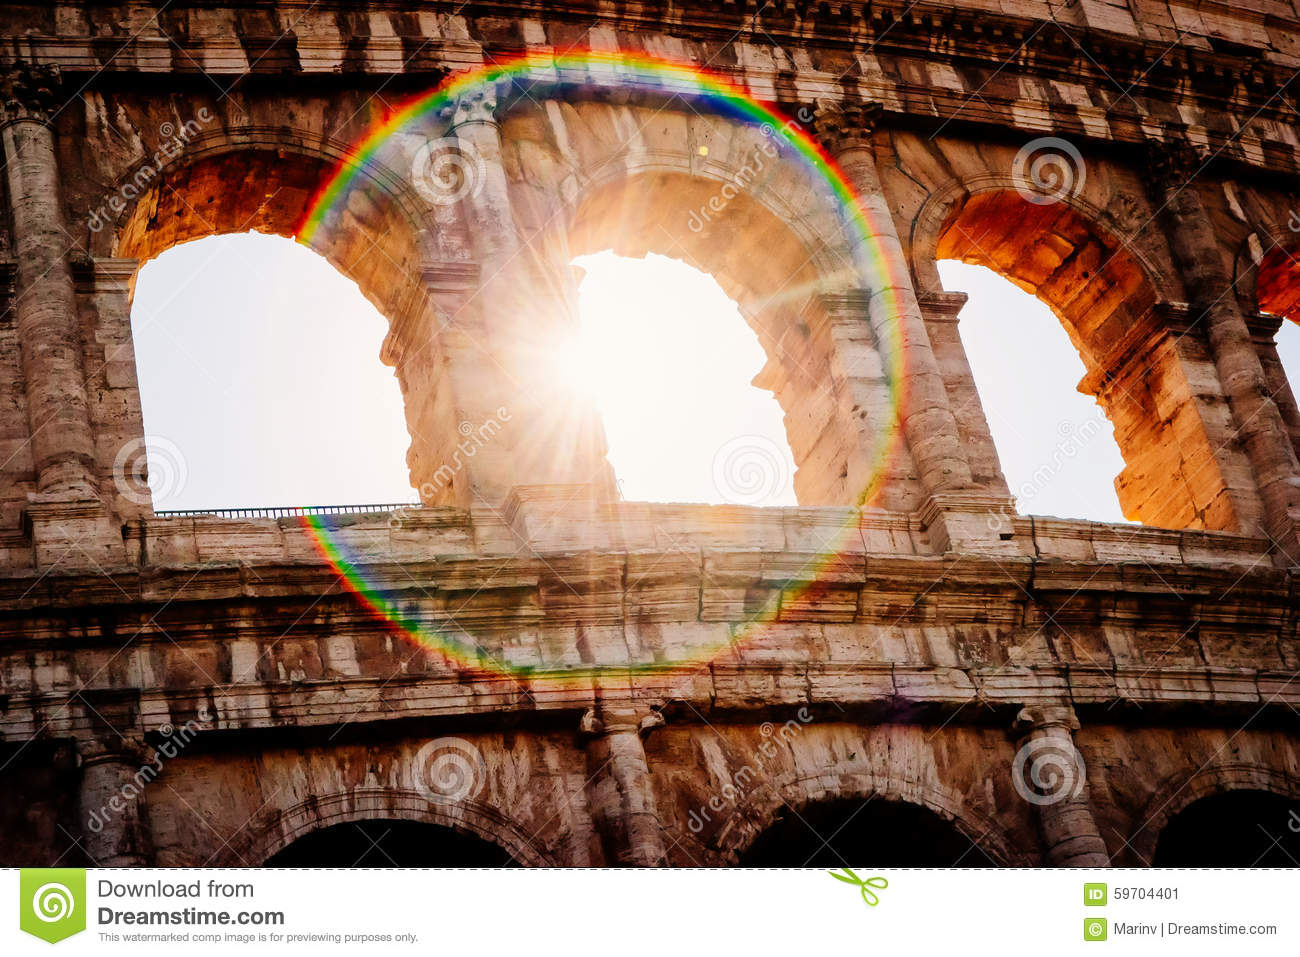 Architecture and arches of the Colosseum in Rome, Italy